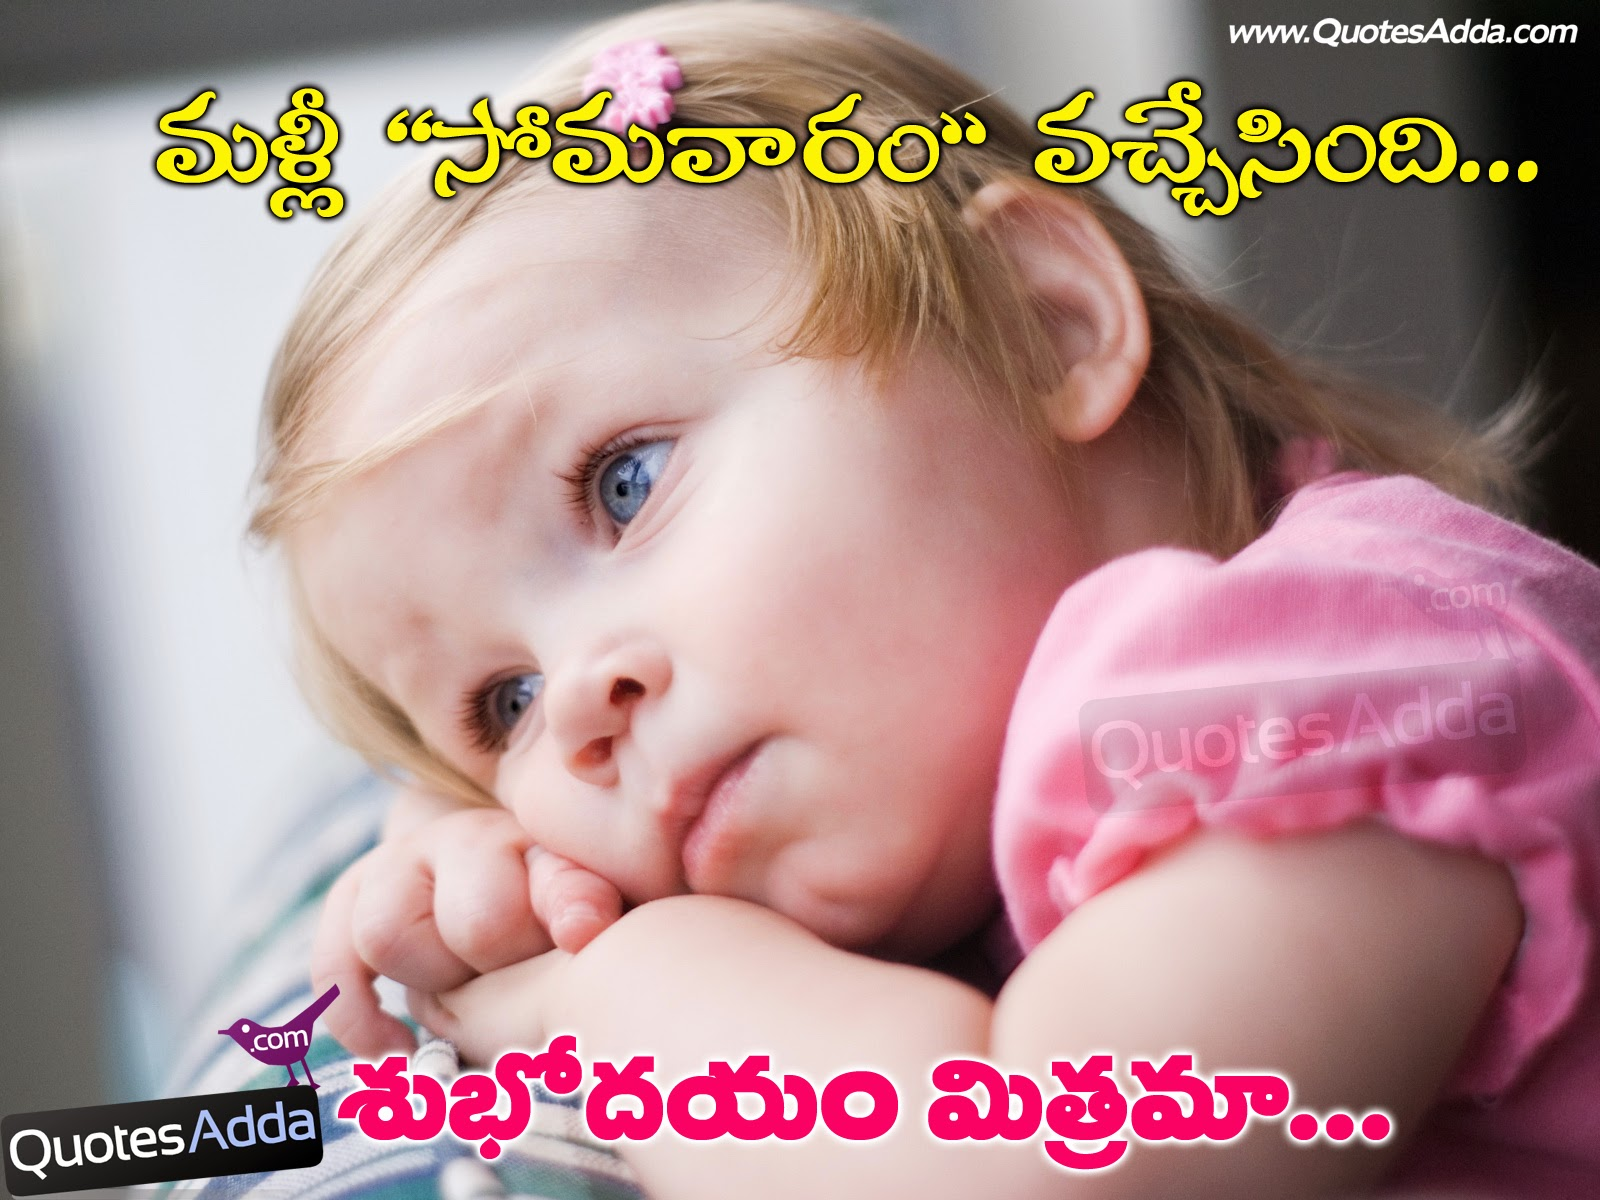 The Best Funny Telugu Quotes With Images Michigancougarcom